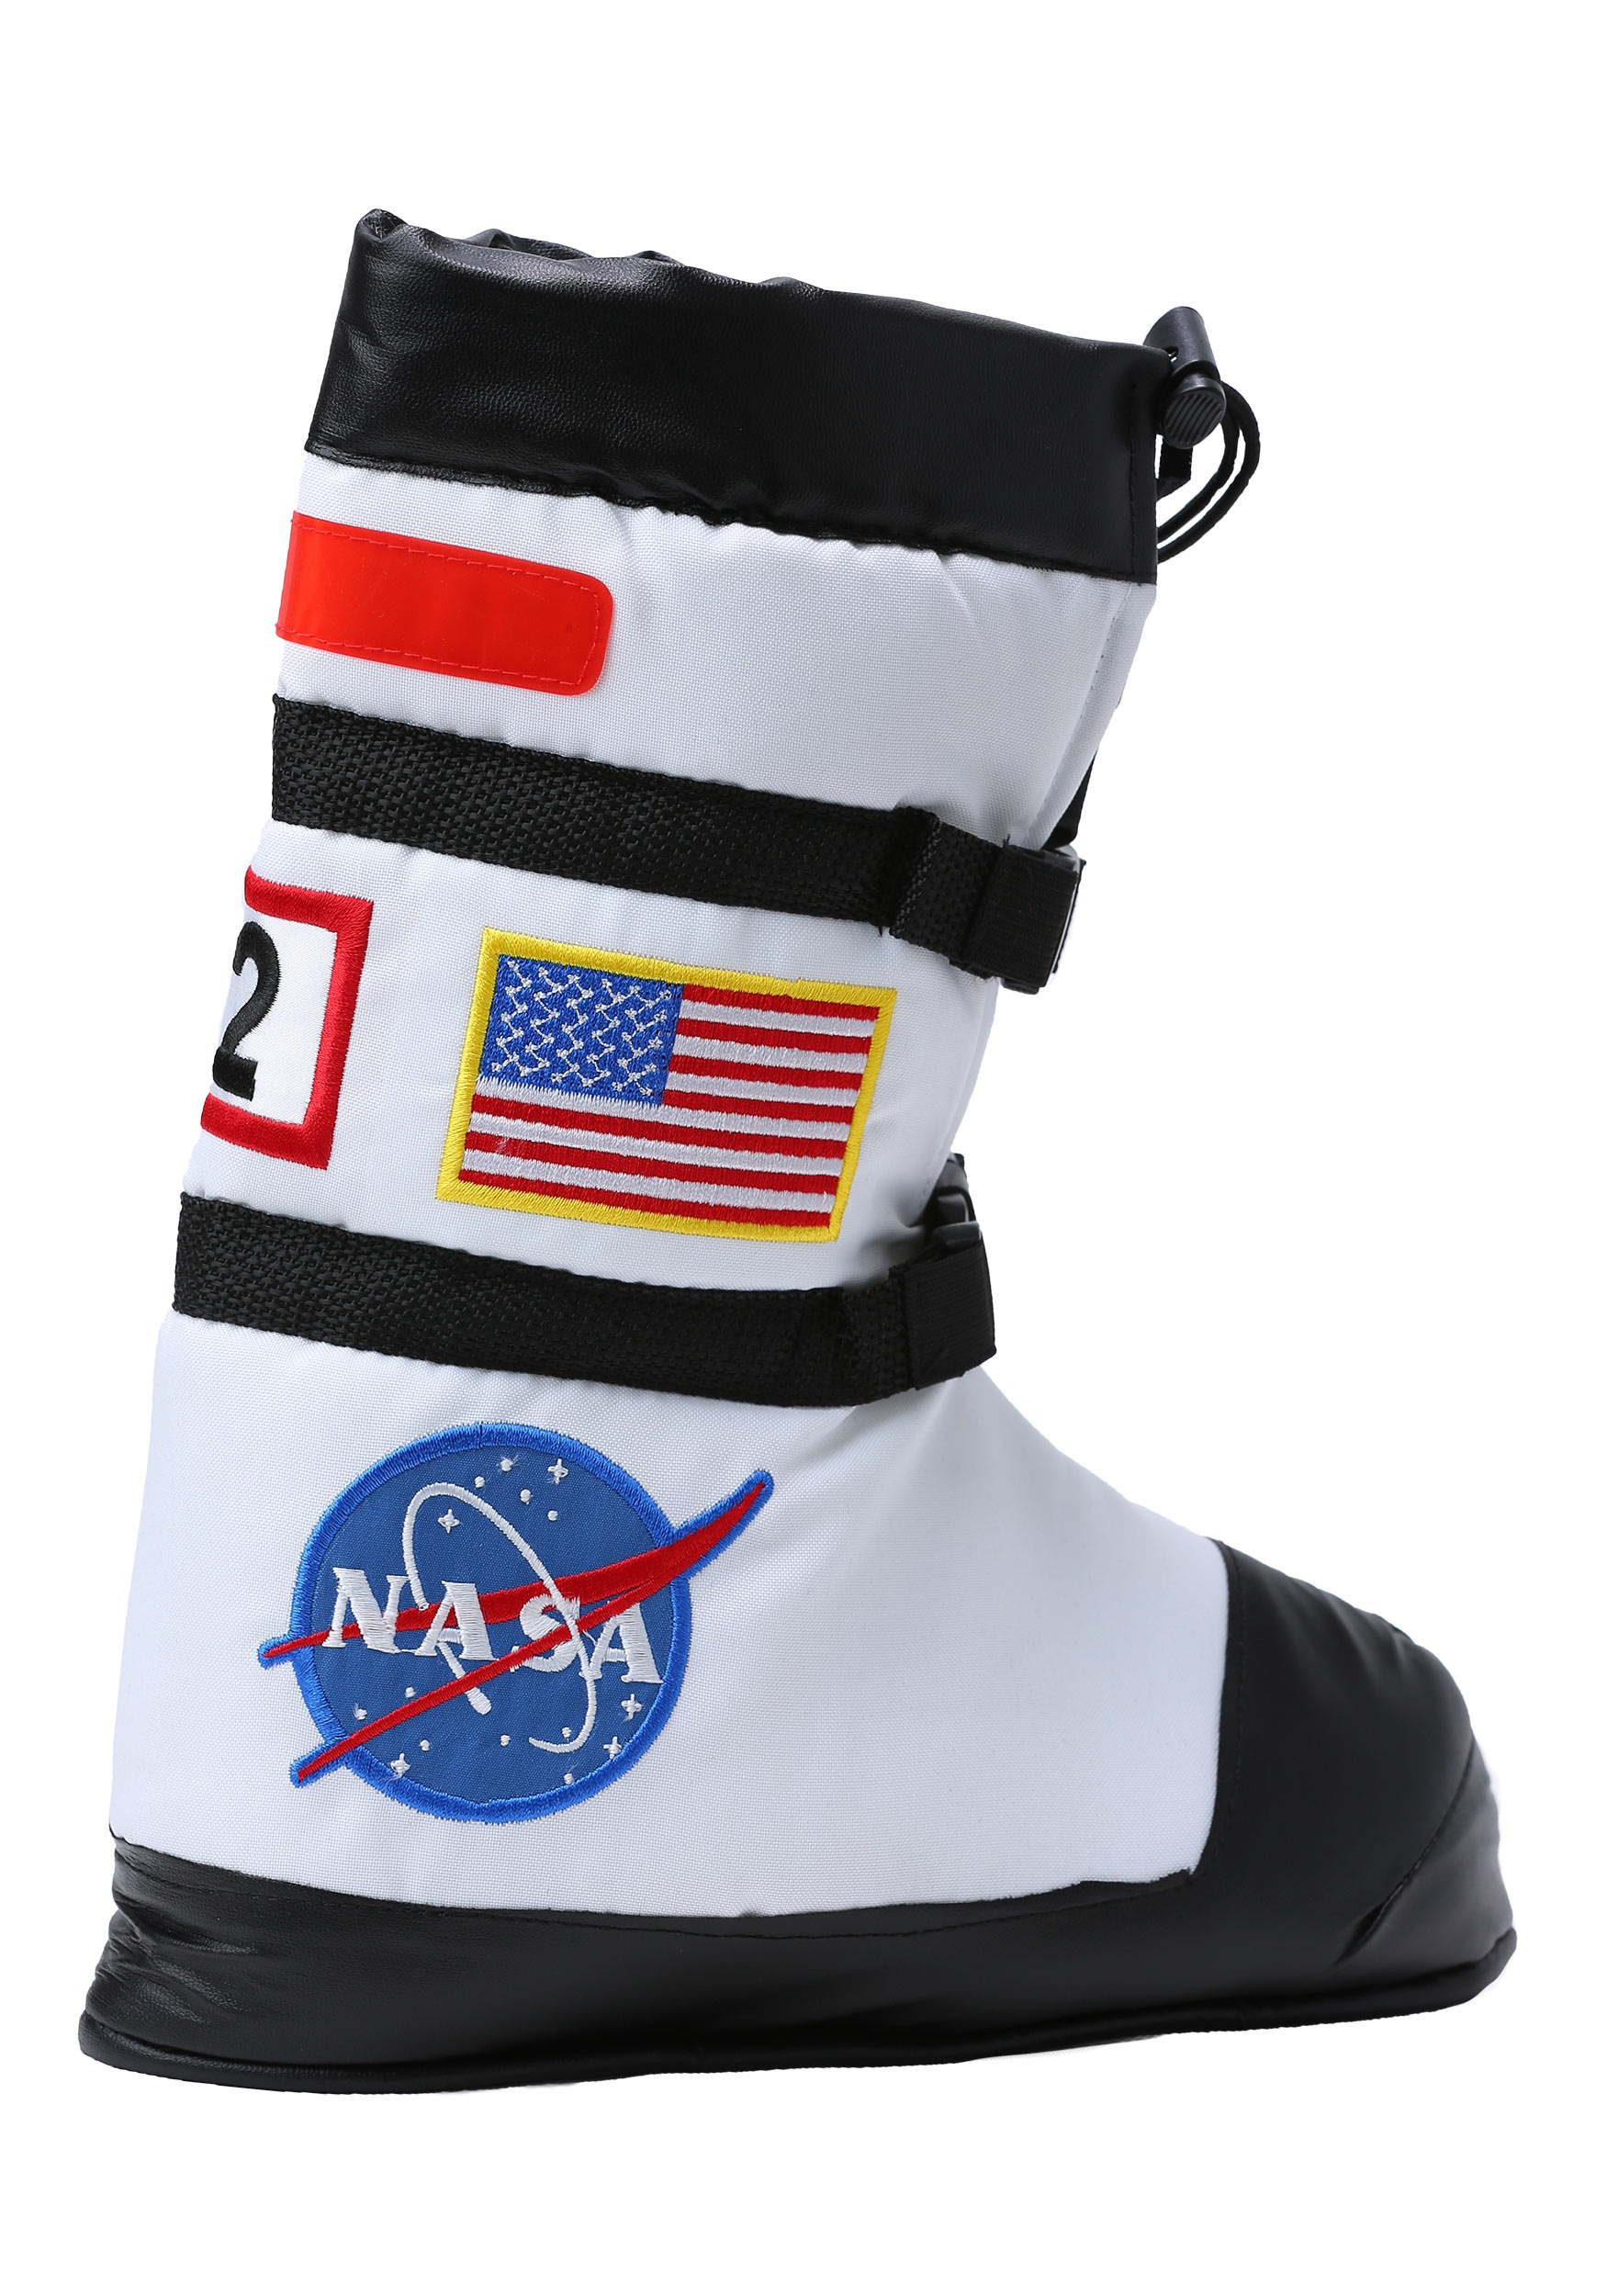 nasa astronaut shoes - photo #18